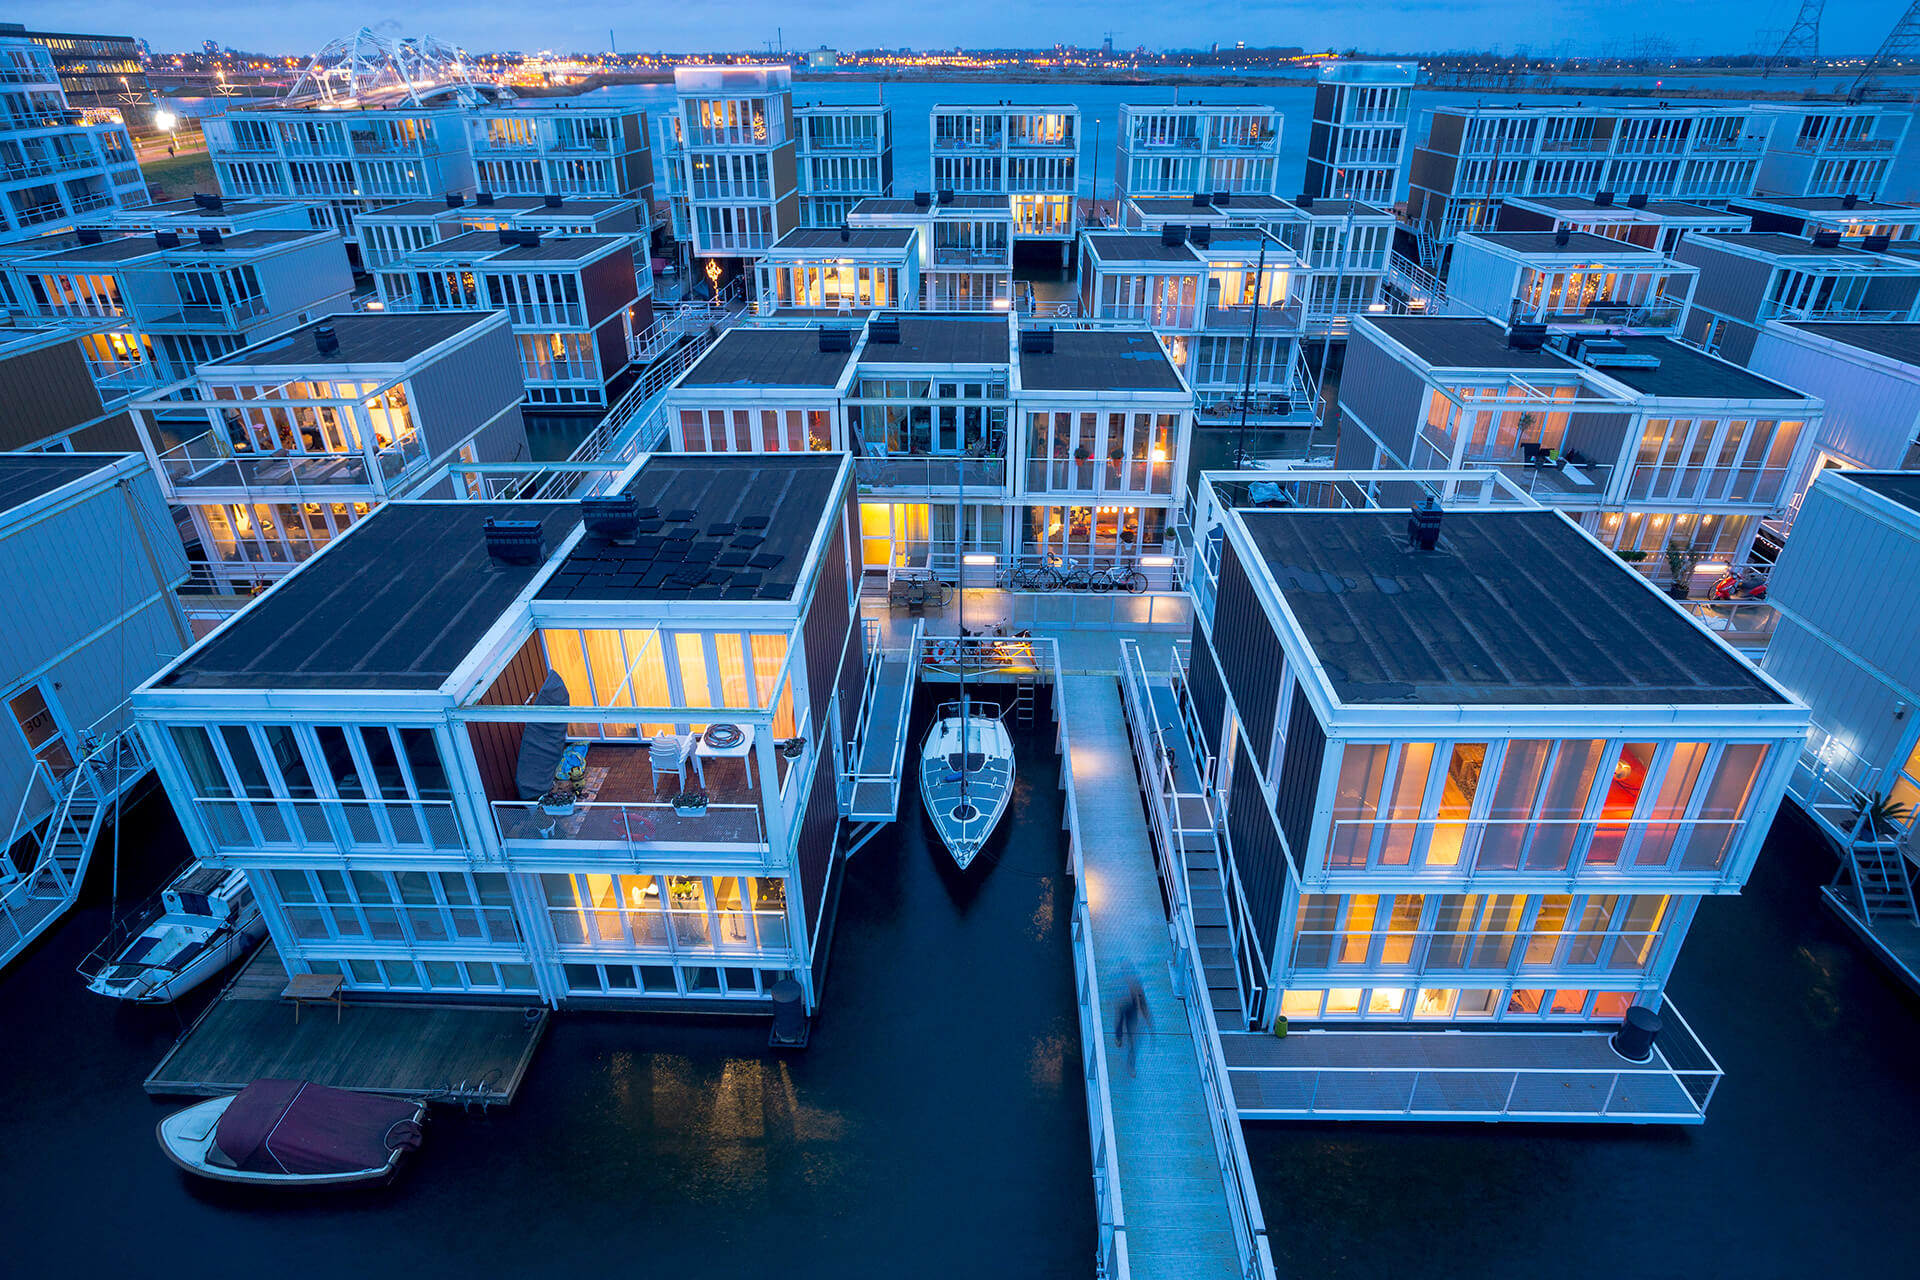 Marlies Rohmer Architect's Floating Houses IJBurg with an original scheme for 158 homes has since been expanded and will ultimately constitute 18,000 units | Sea of Change | Roca London Gallery | STIRworld